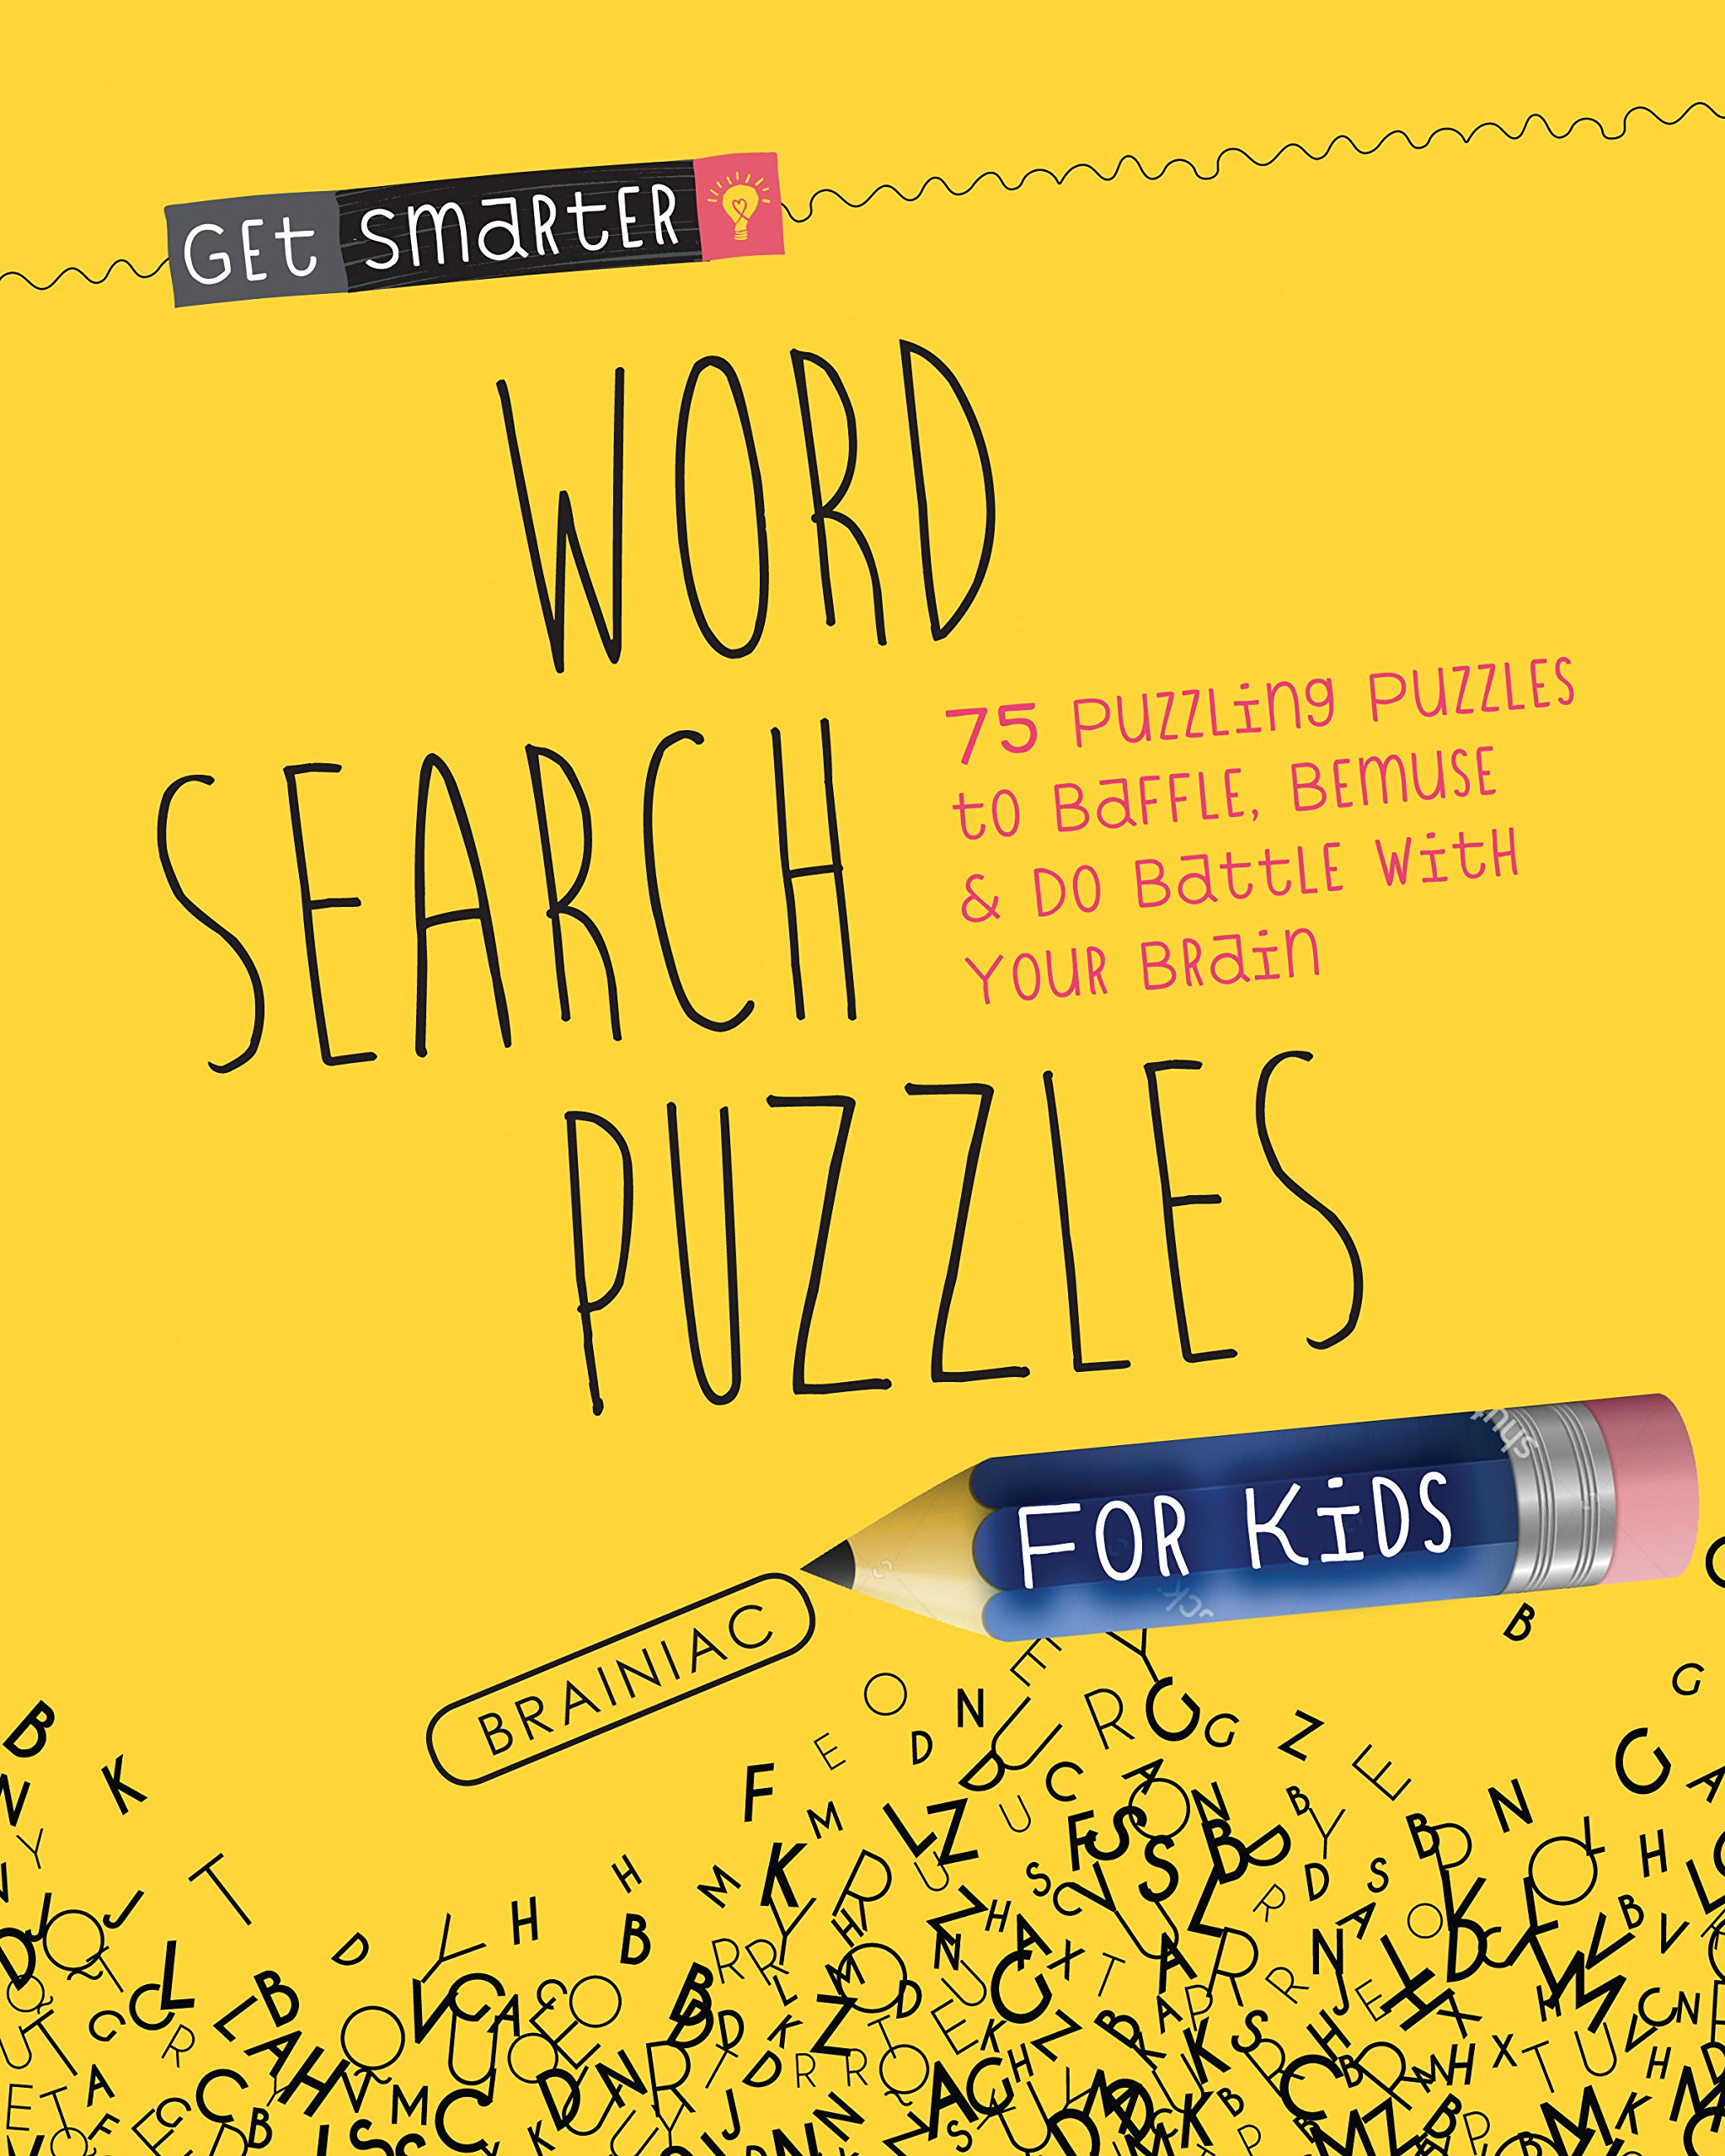 Get Smarter: Word Search Puzzles for Kids: 75 Puzzling Puzzles To Baffle, Bemuse & Do Battle with Your Brain